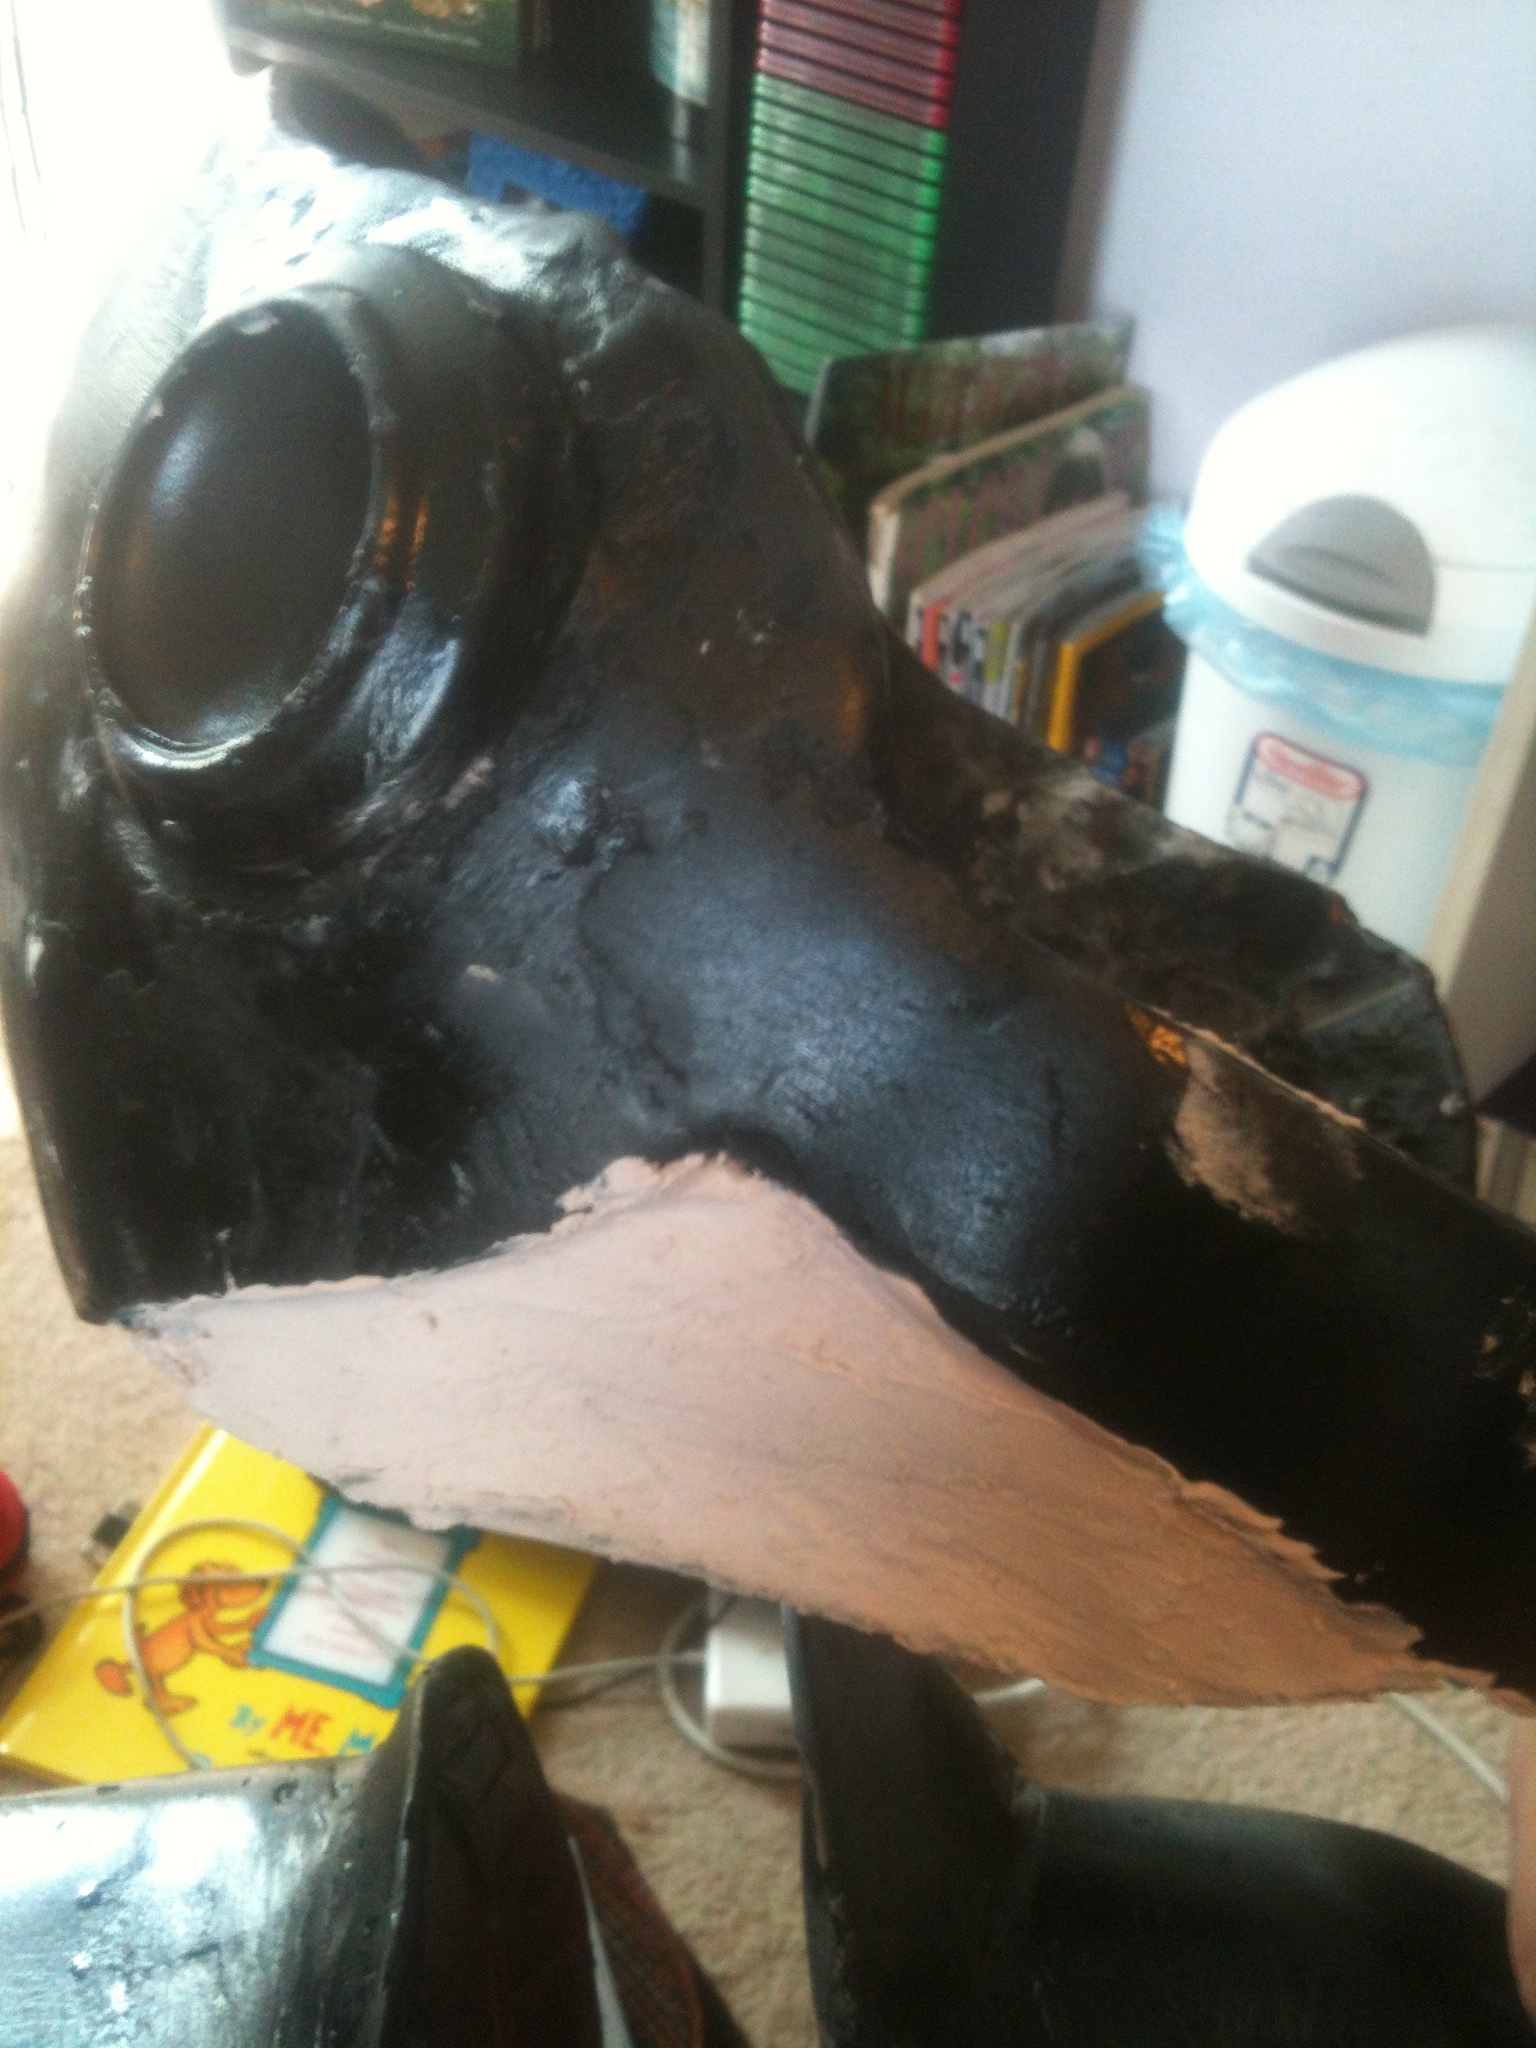 Picture of Bondo and Sanding...